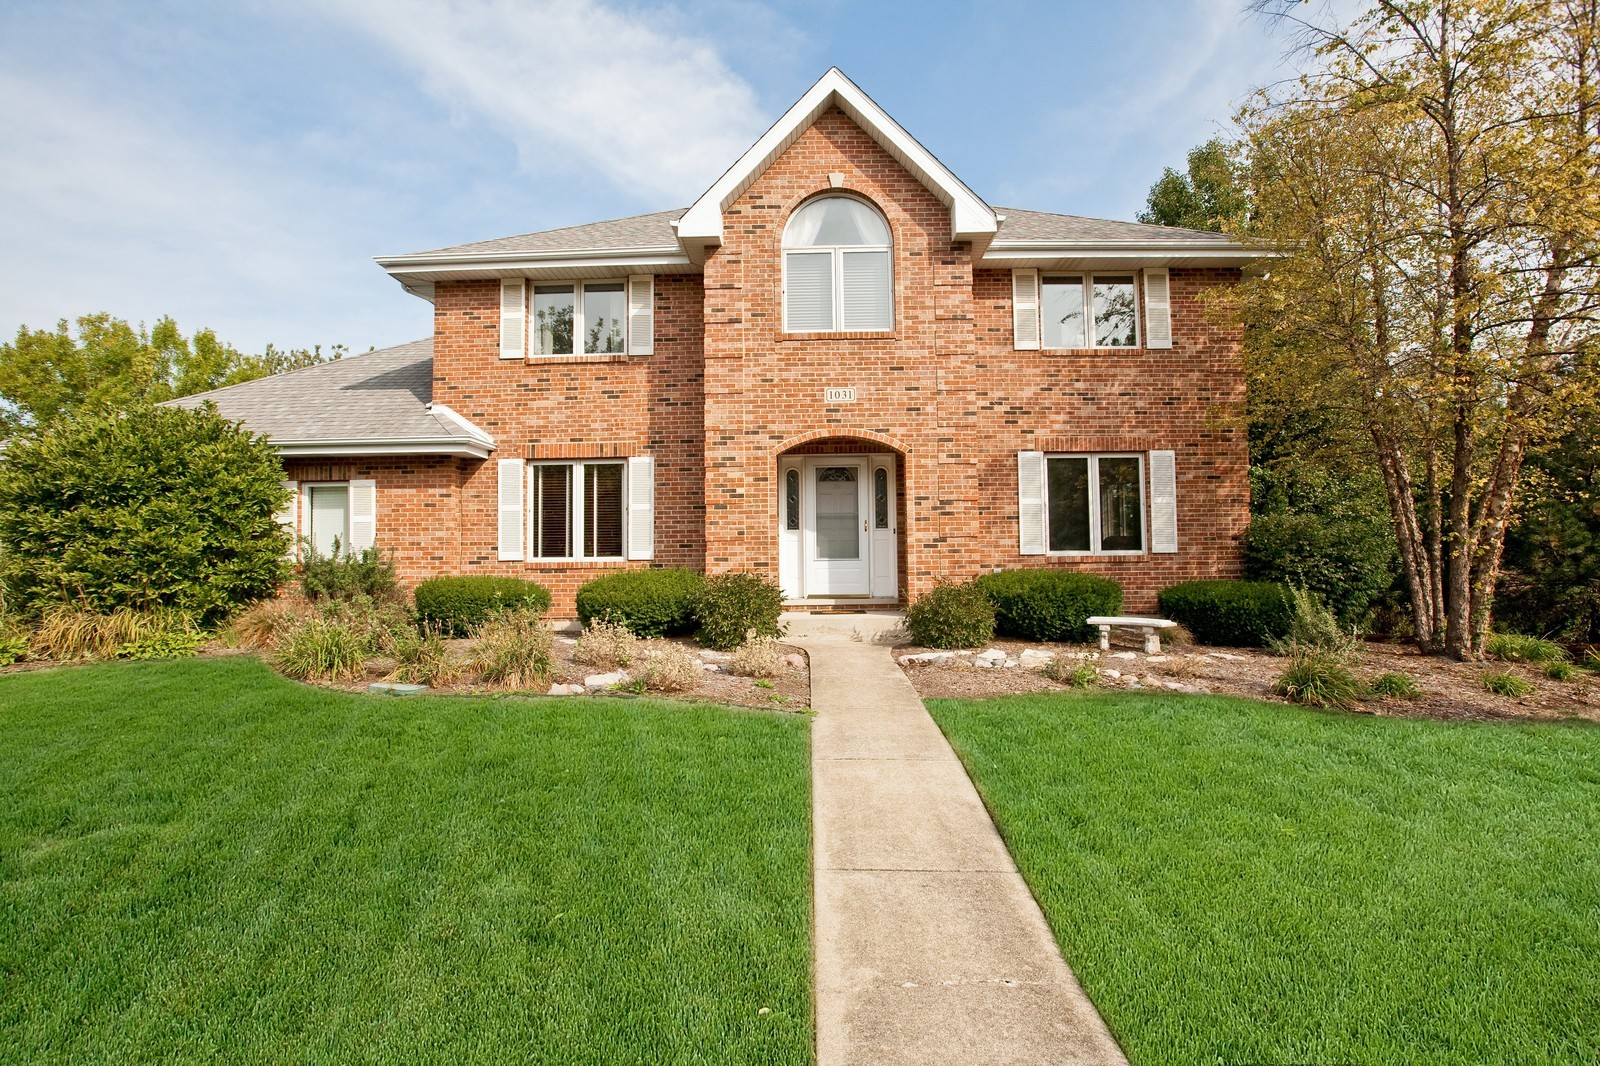 Real Estate Photography - 1031 W. 119th St, Lemont, IL, 60439 - Front View